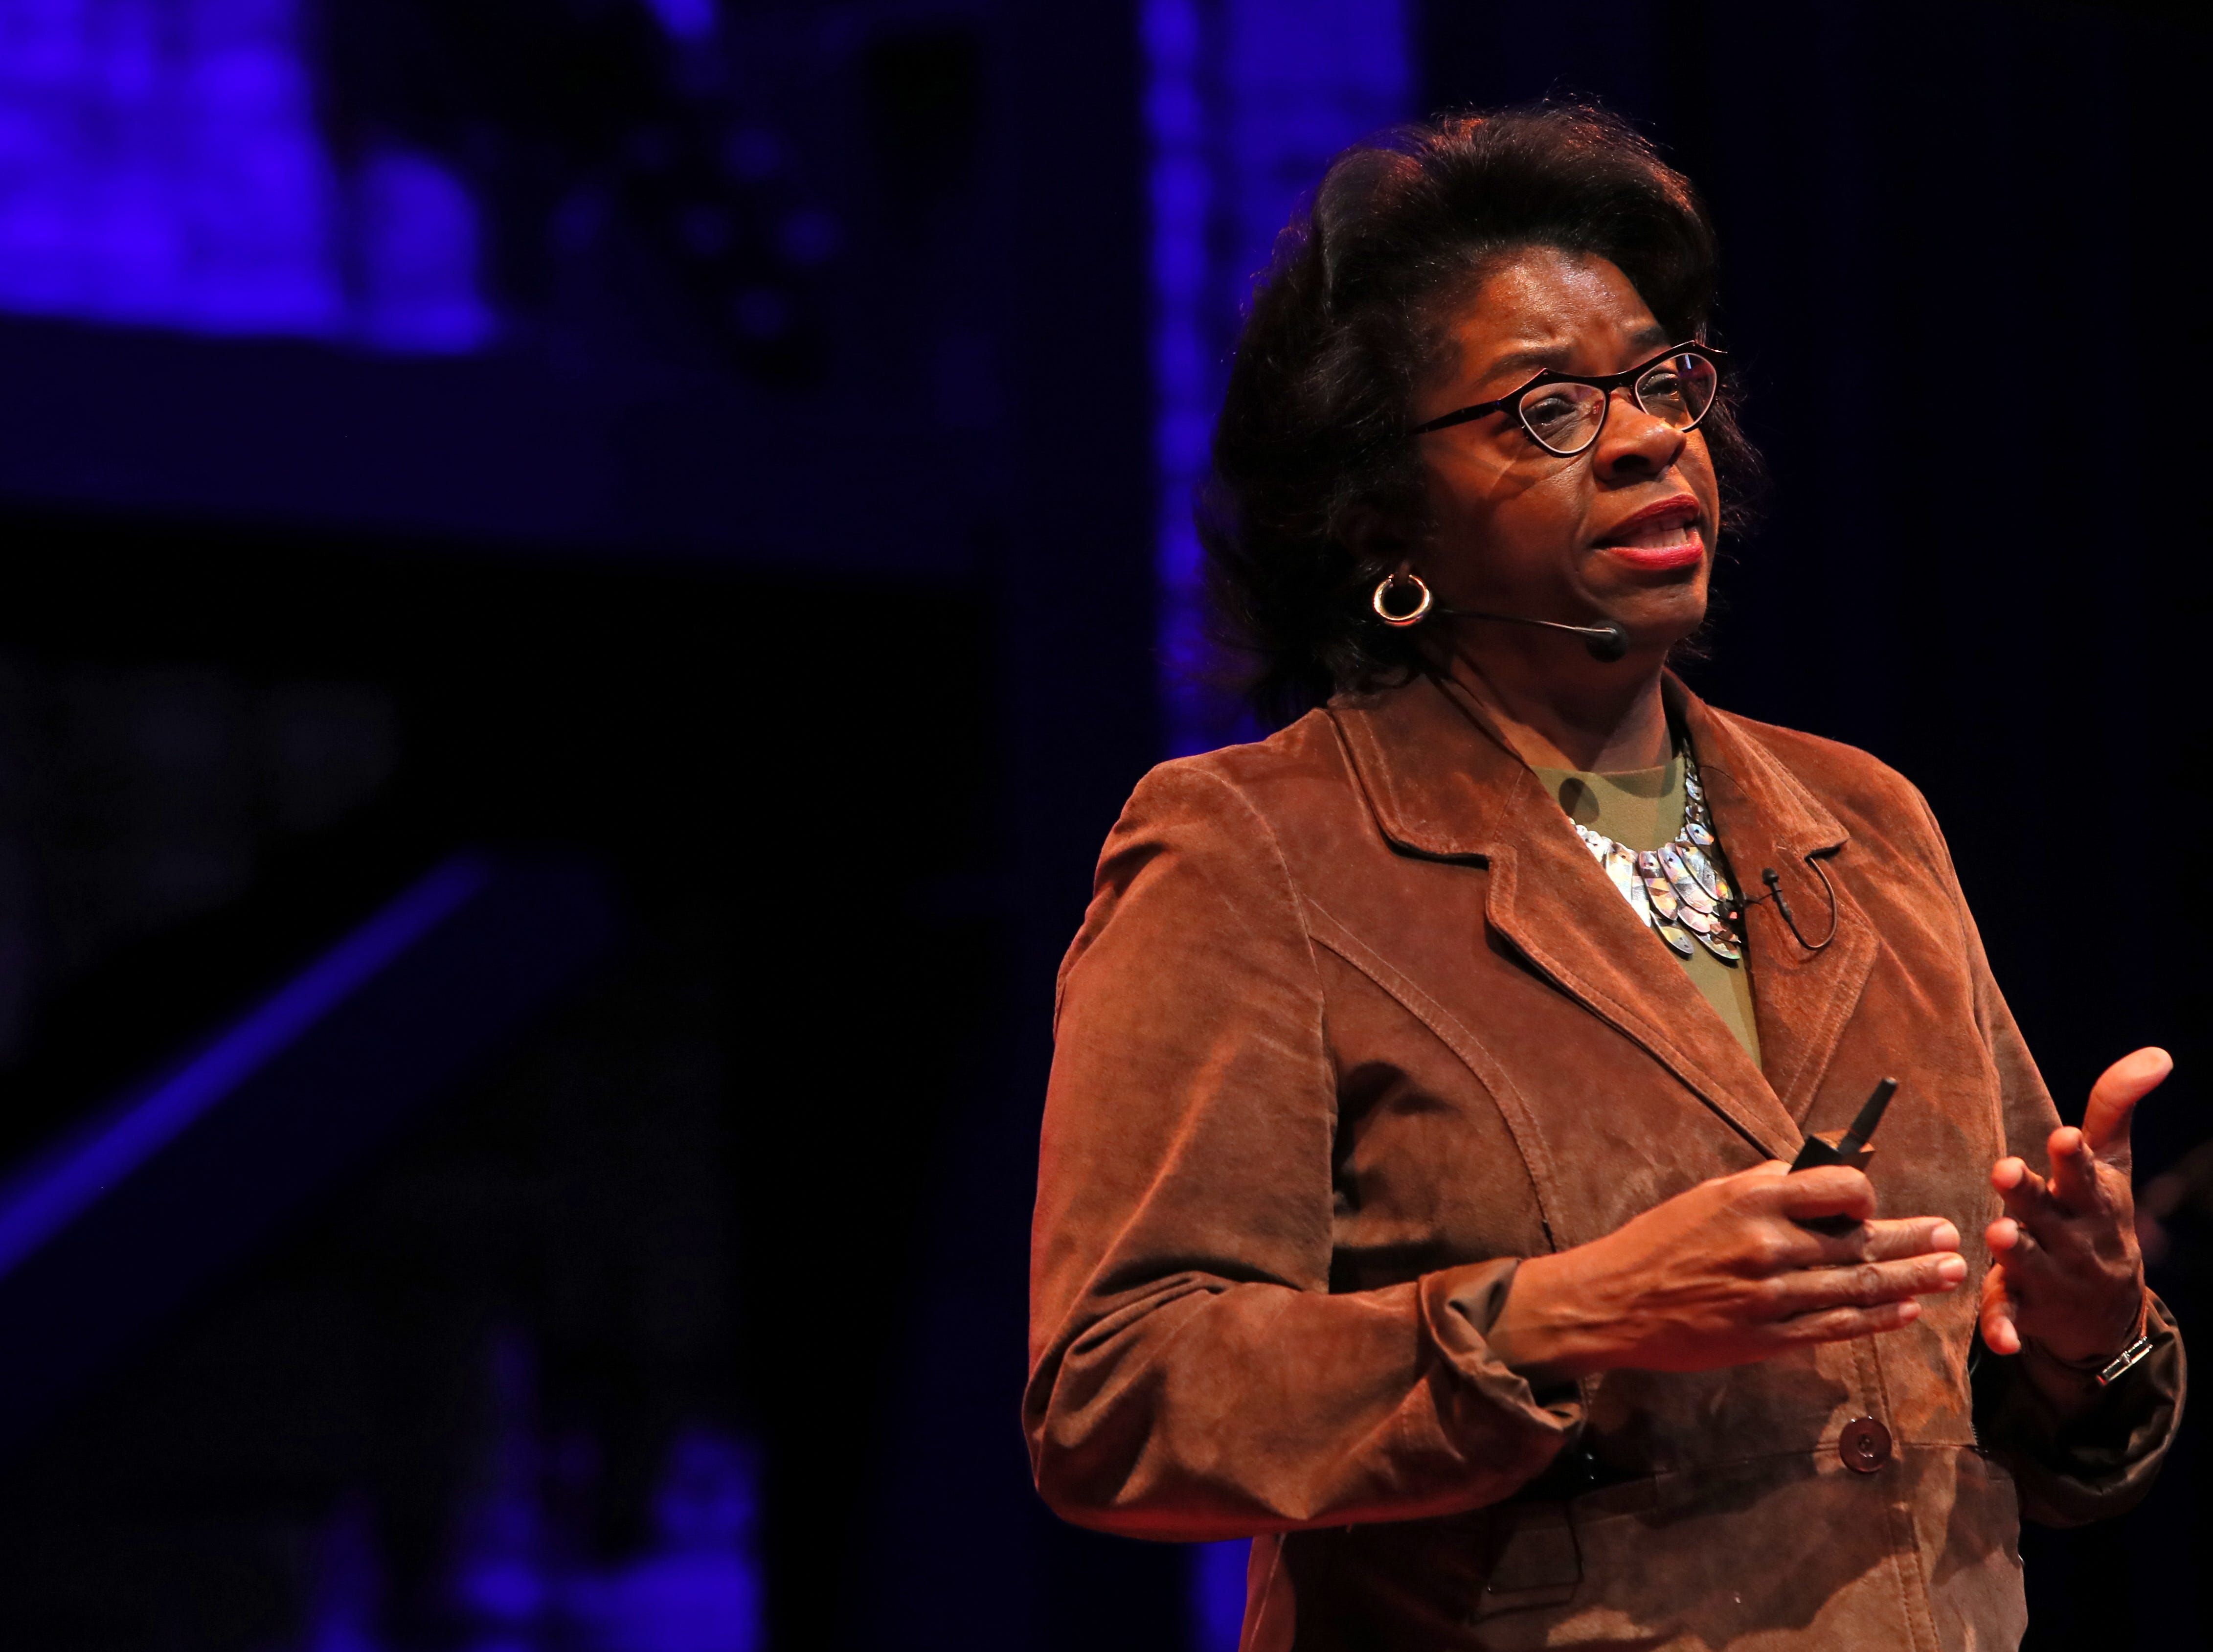 Daphne McFerren speaks about the future automation of society during a TEDx Memphis event at the Crosstown Arts Theatre Saturday, Feb. 2, 2019.